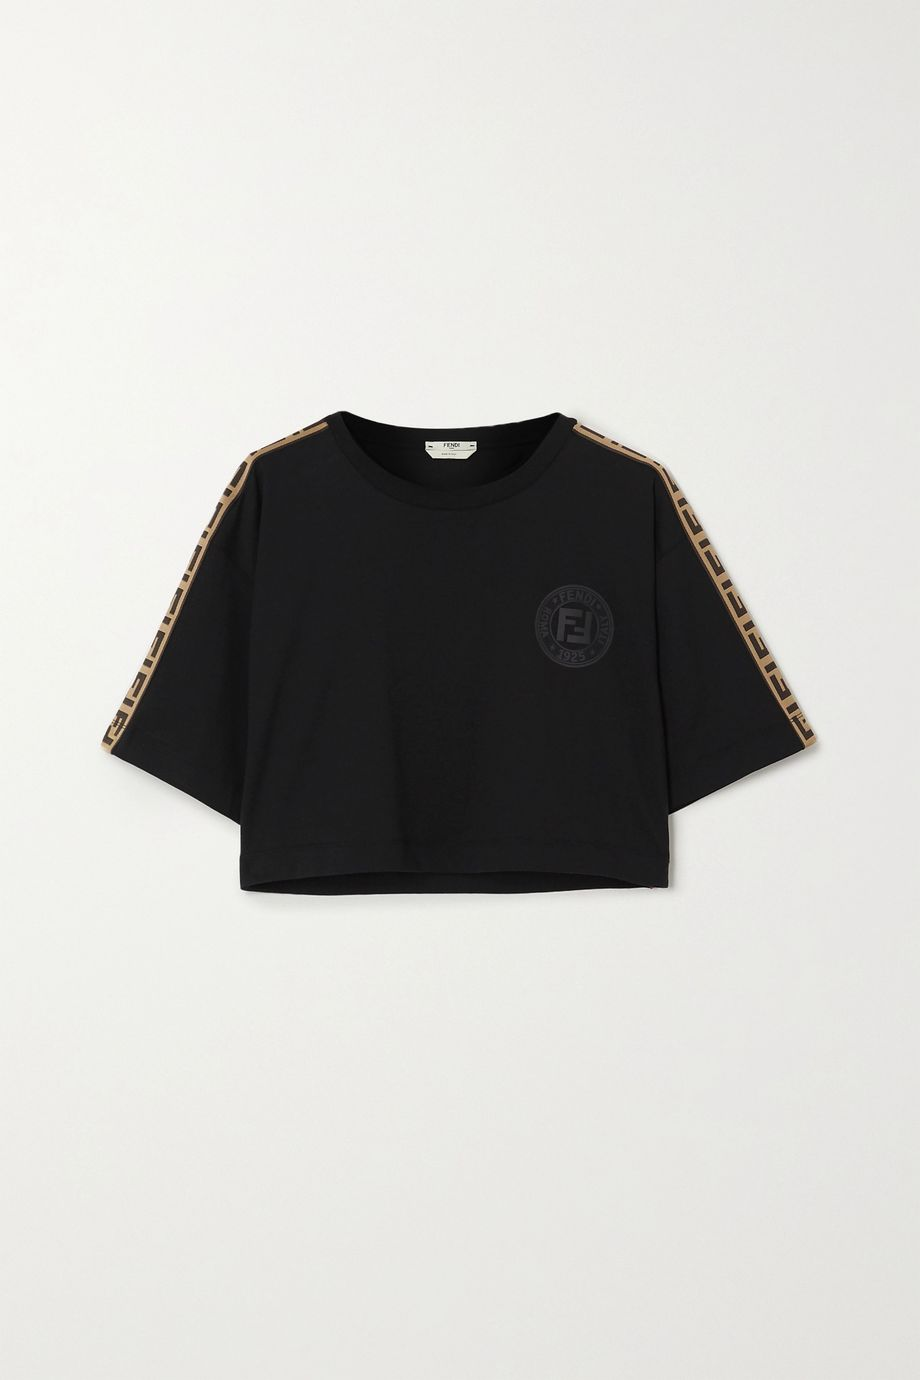 Fendi Cropped jacquard-trimmed printed cotton-jersey T-shirt